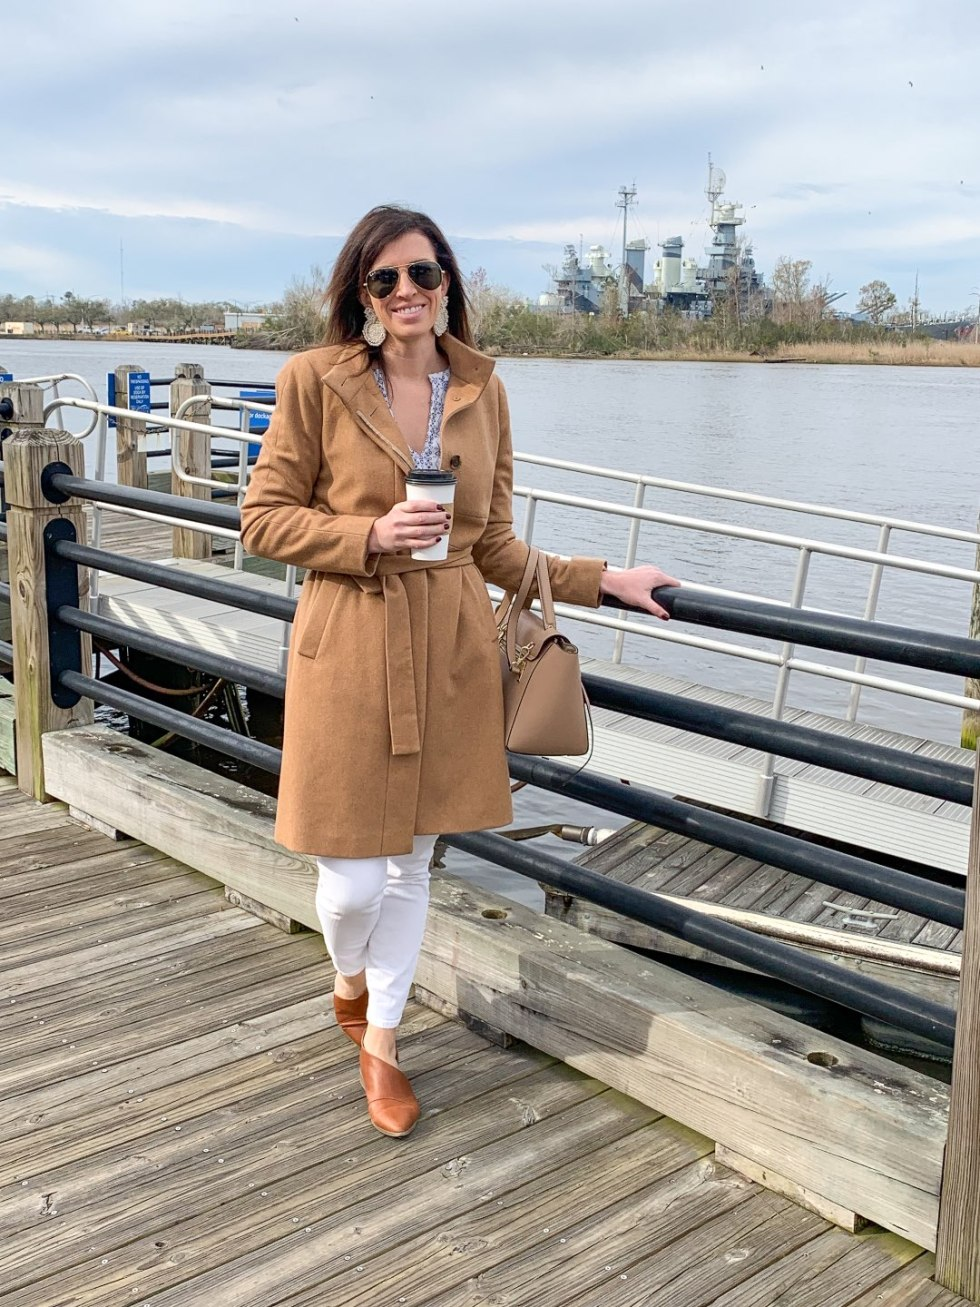 Top 5 Best Fall Vacations in North Carolina - I'm Fixin' To - @mbg0112 | Top 5 Best Fall Vacations in North Carolina by popular North Carolina blog, I'm Fixin' To: image of a woman outside at Wilmington North Carolina.